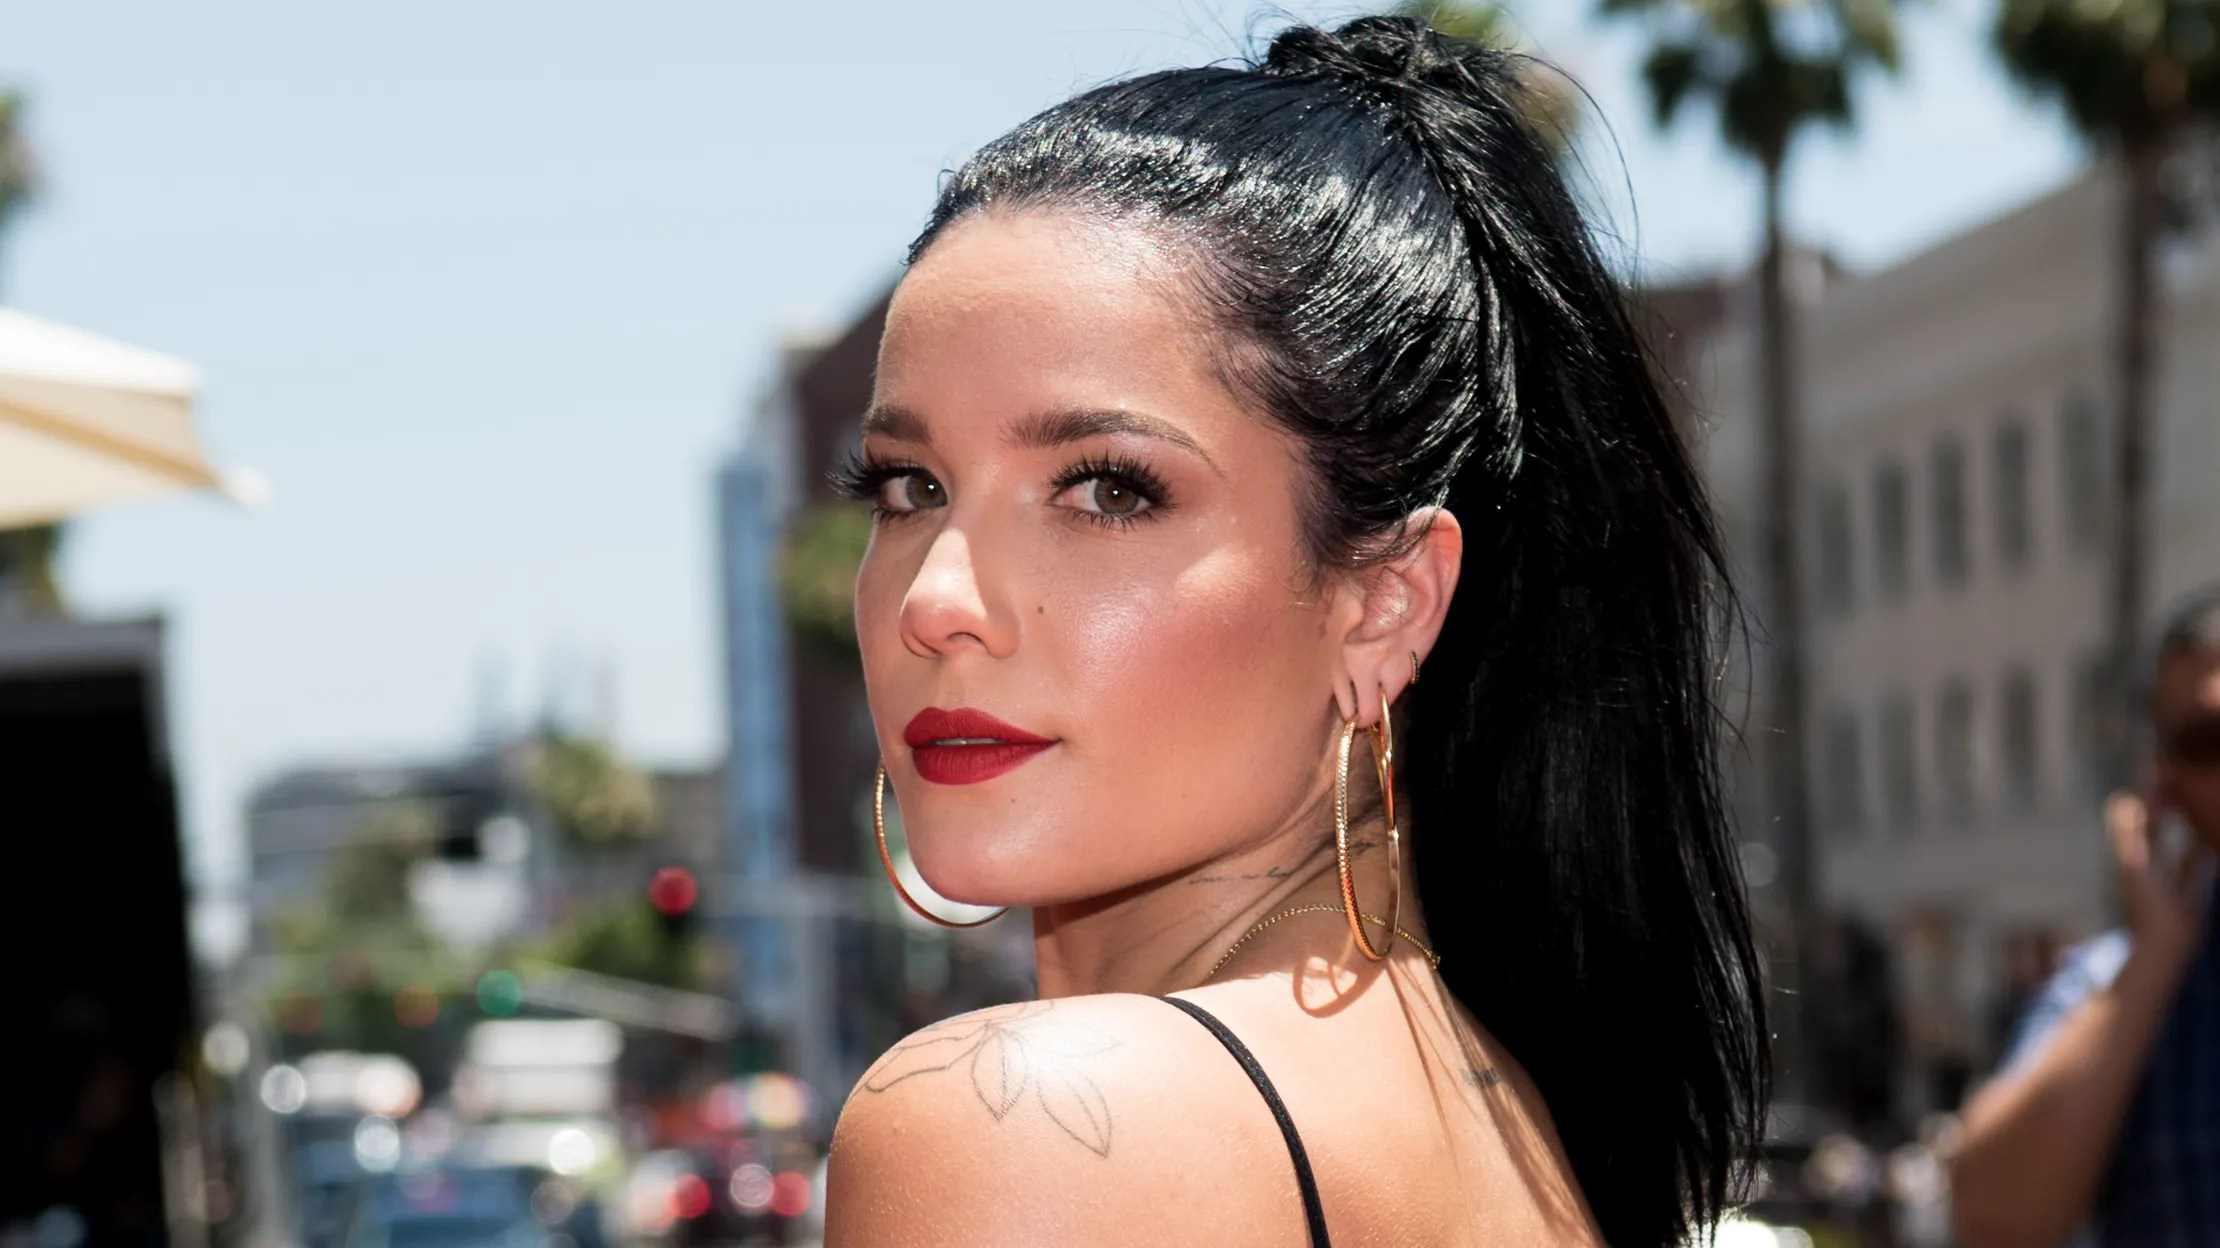 Hairstyles For Hair Growing Out Halsey Responds To Instagram Commenters Who Criticized Her